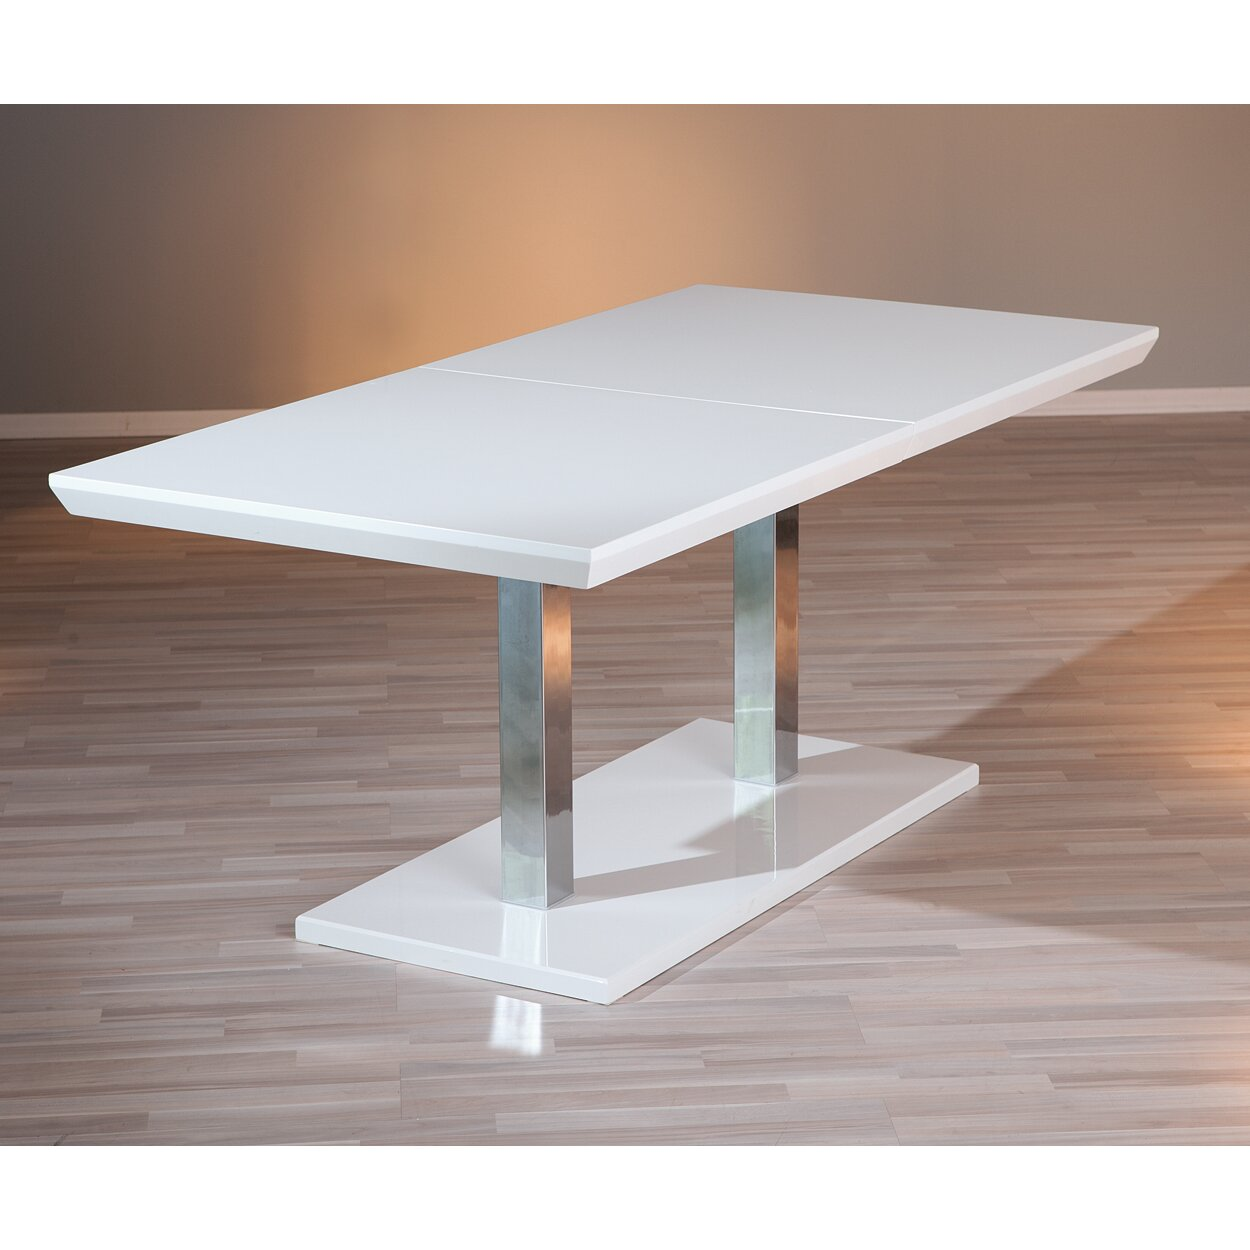 House Additions Edmonton Extendable Dining Table amp Reviews  : Edmonton Extendable Dining Table FOUS6285 from www.wayfair.co.uk size 1250 x 1250 jpeg 175kB